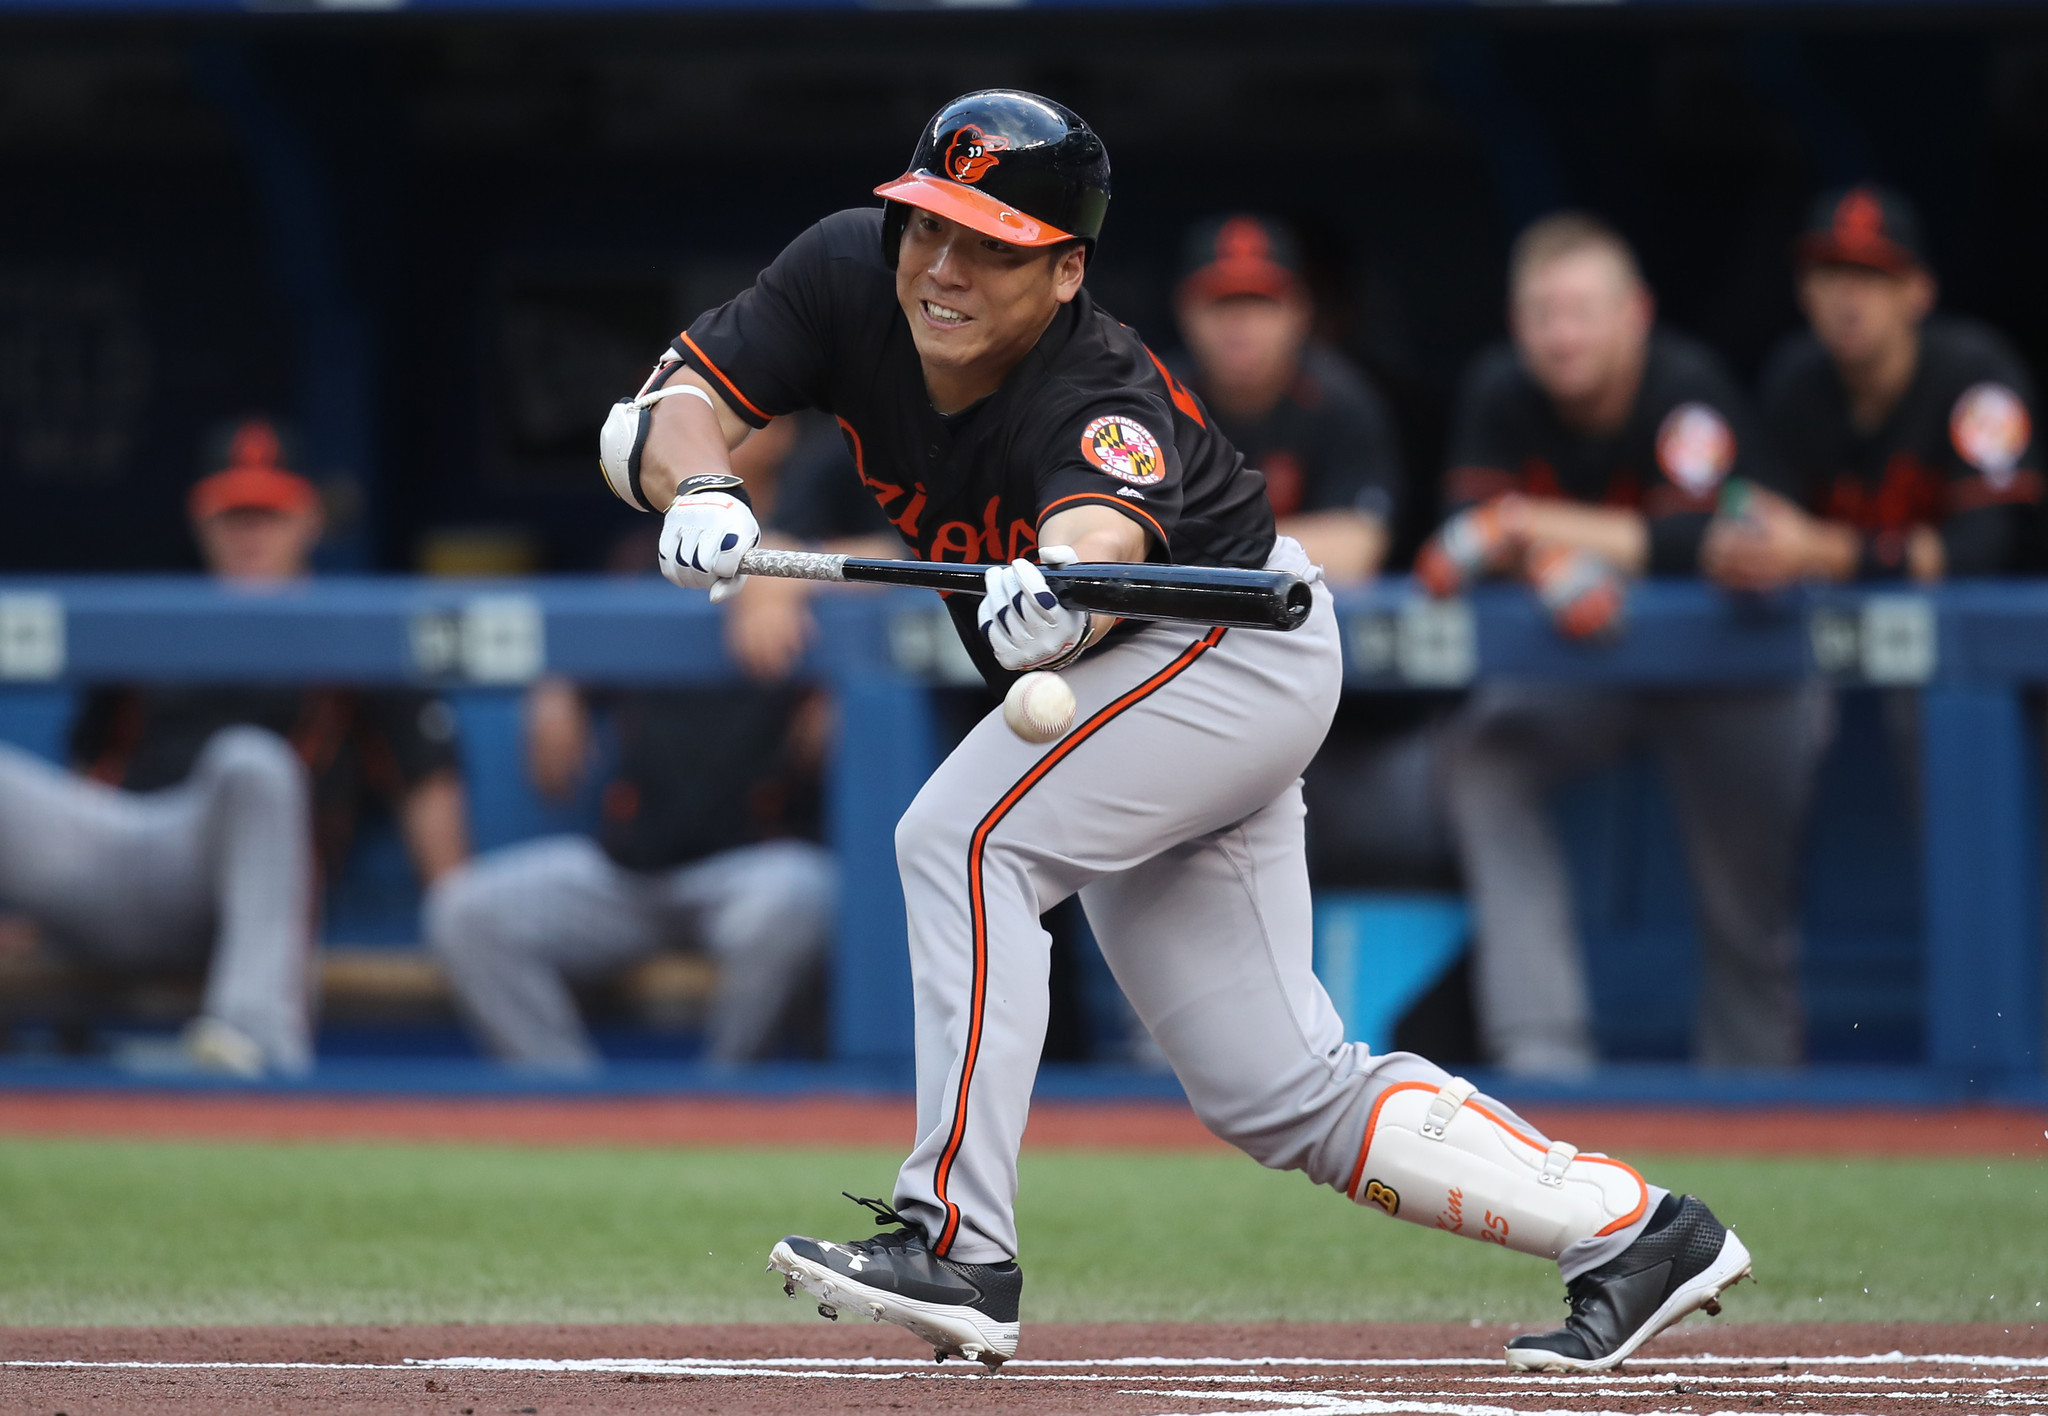 Bal-orioles-recap-birds-blue-jays-20160729